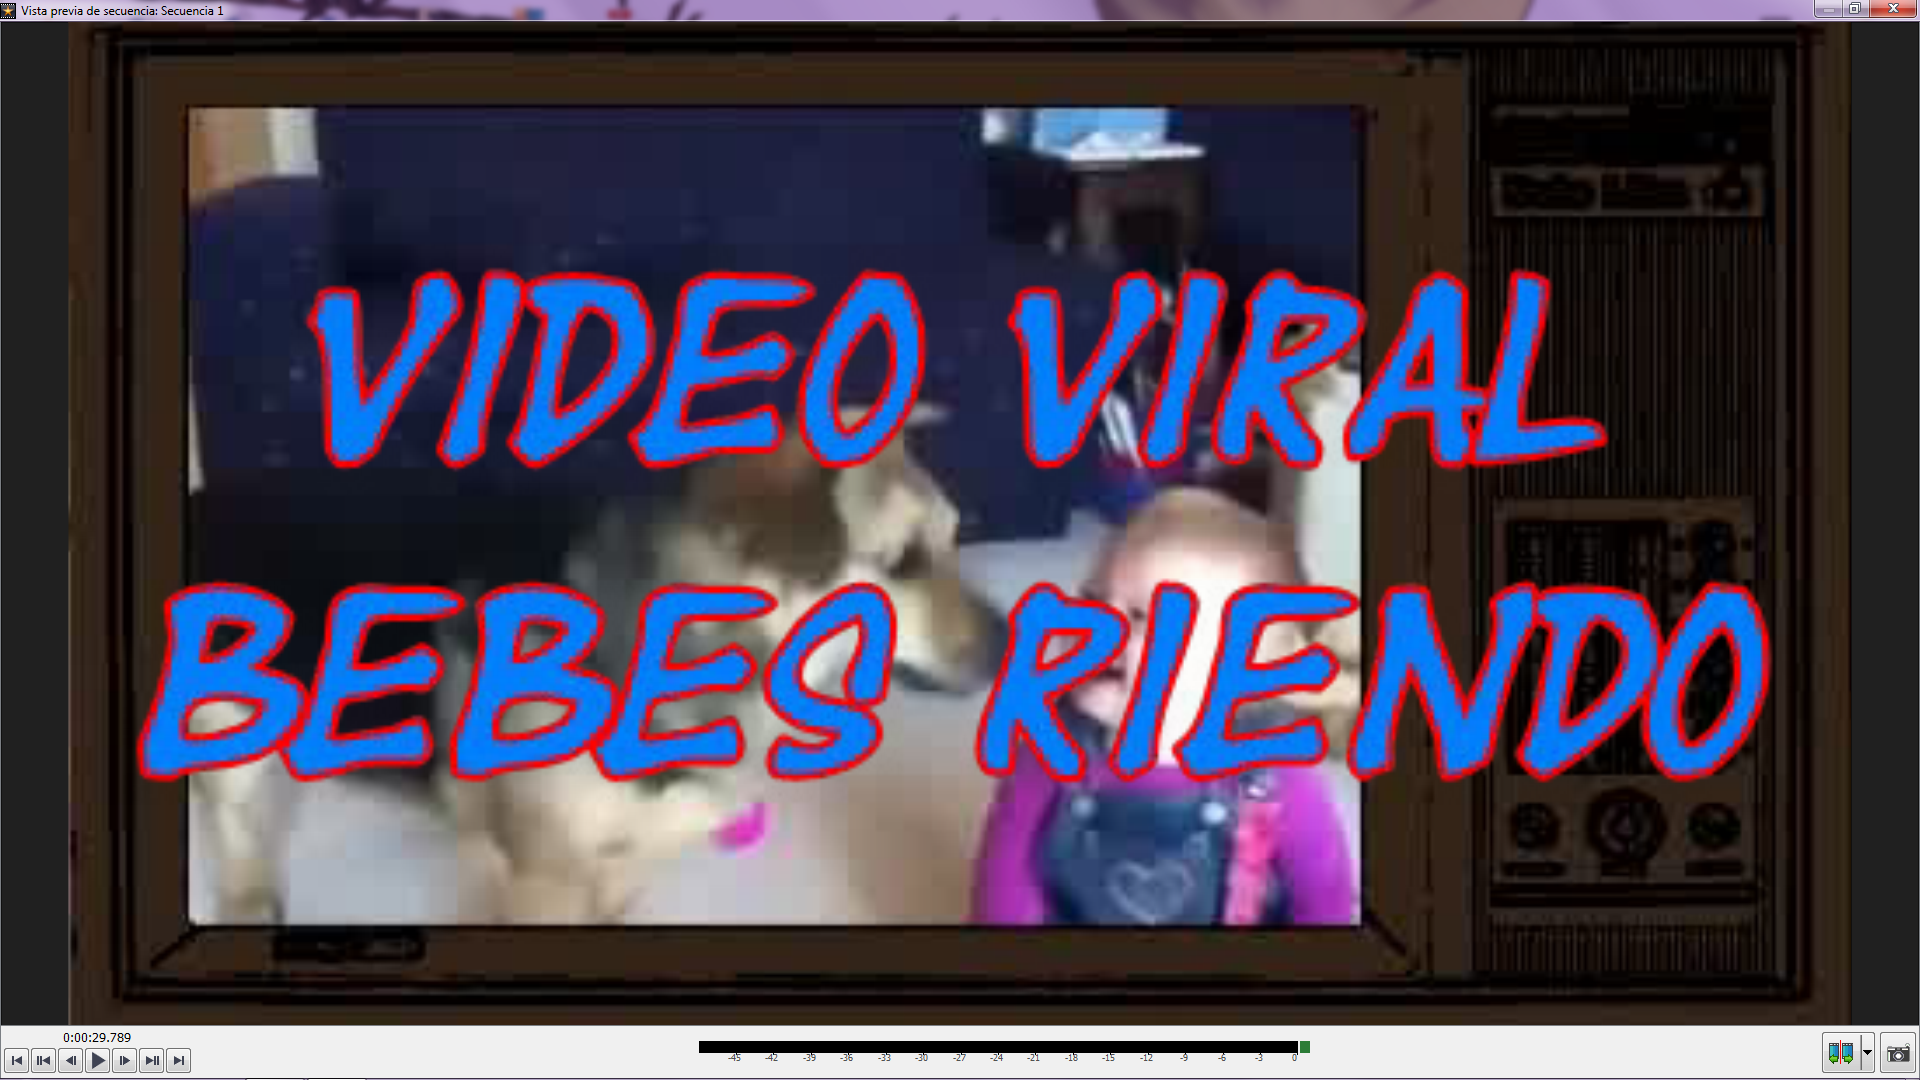 SI TE RIES PIERDE #2, videos virales, videos de caidas, videos chistosos,videos de risa, videos de humor,videos graciosos,videos mas vistos, funny videos,videos de bromas,videos insoliyos,fallen videos,viral videos,videos of jokes,Most seen,top 10